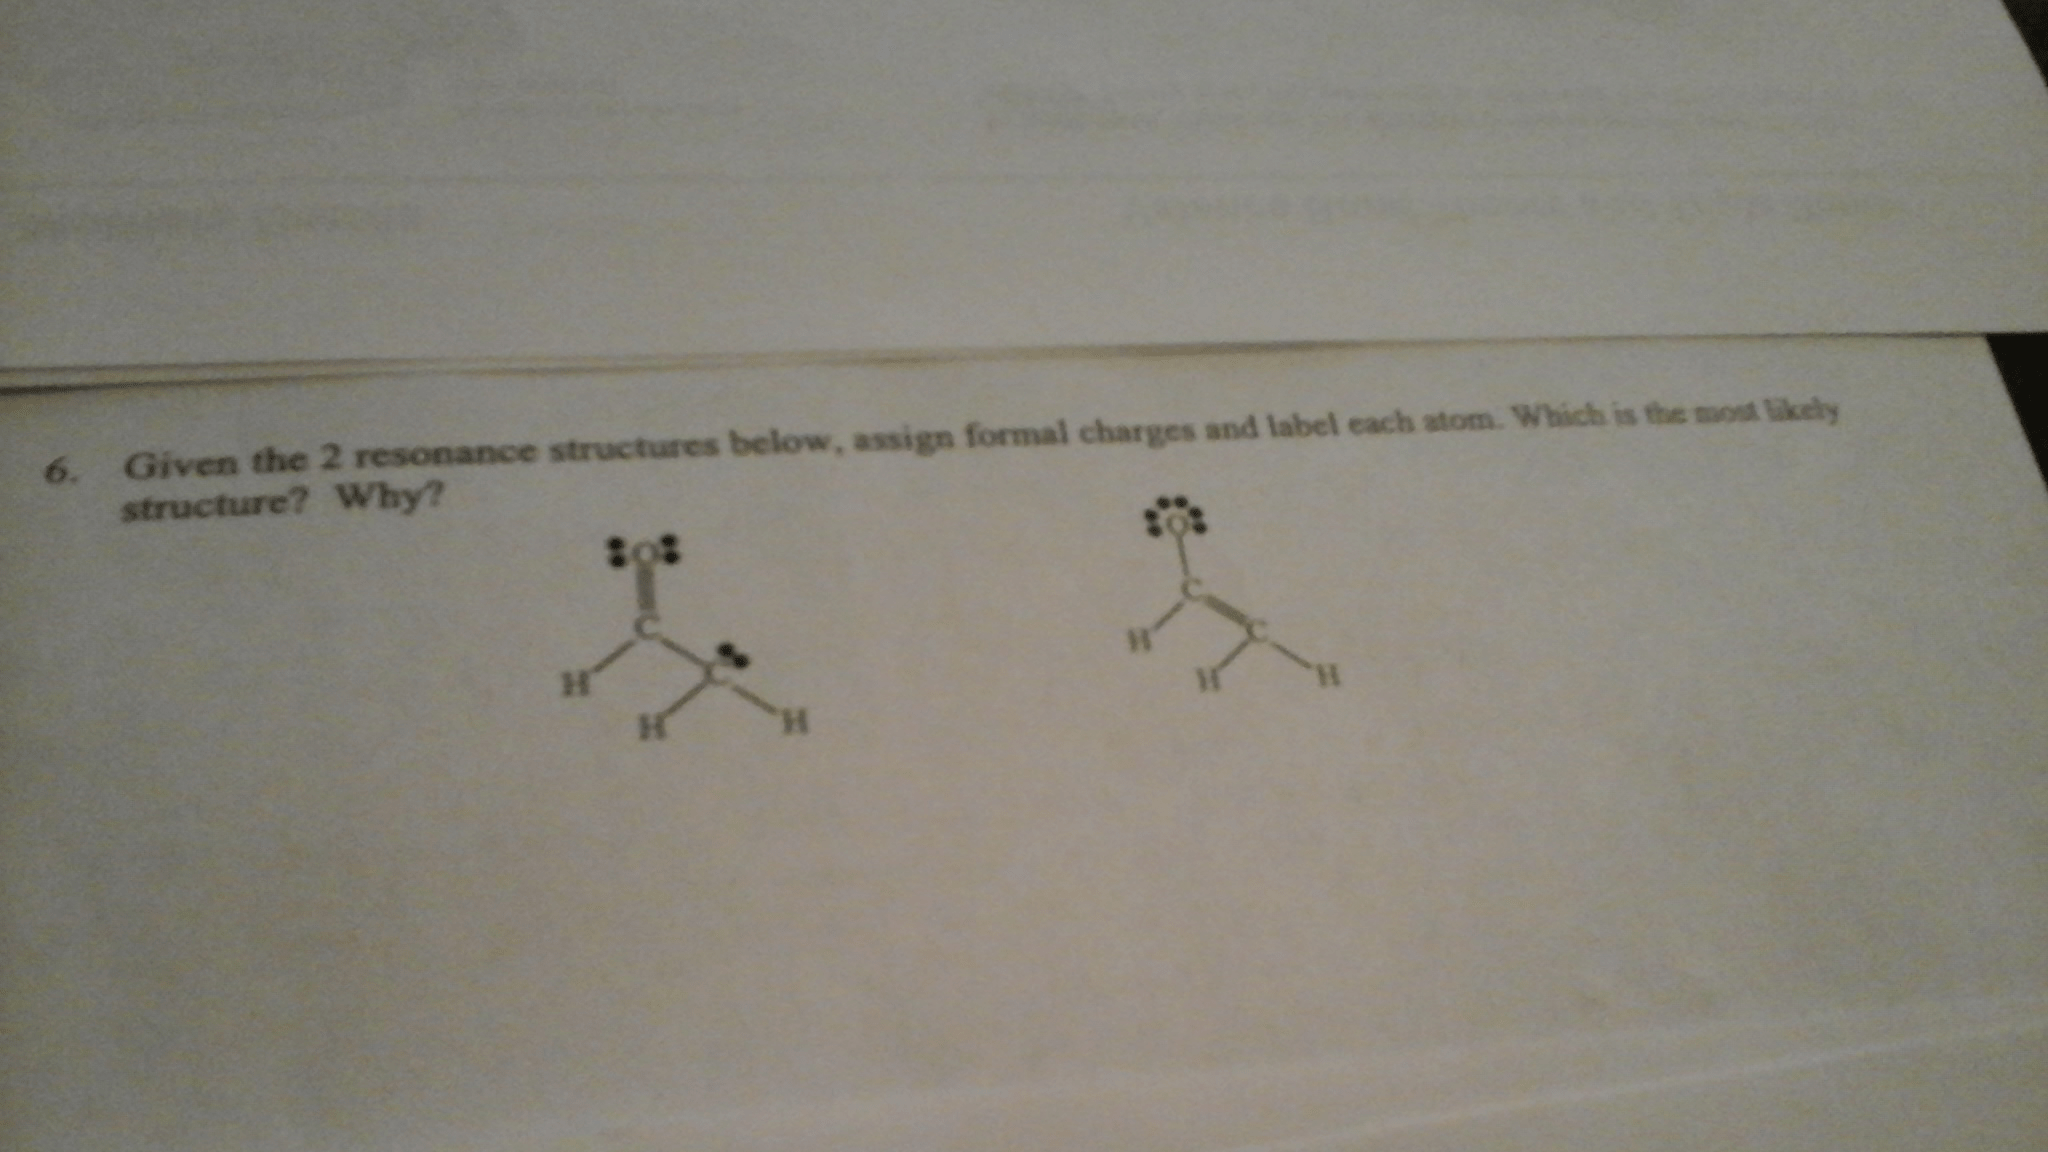 34 For The Structure Below Label Each Atom With The